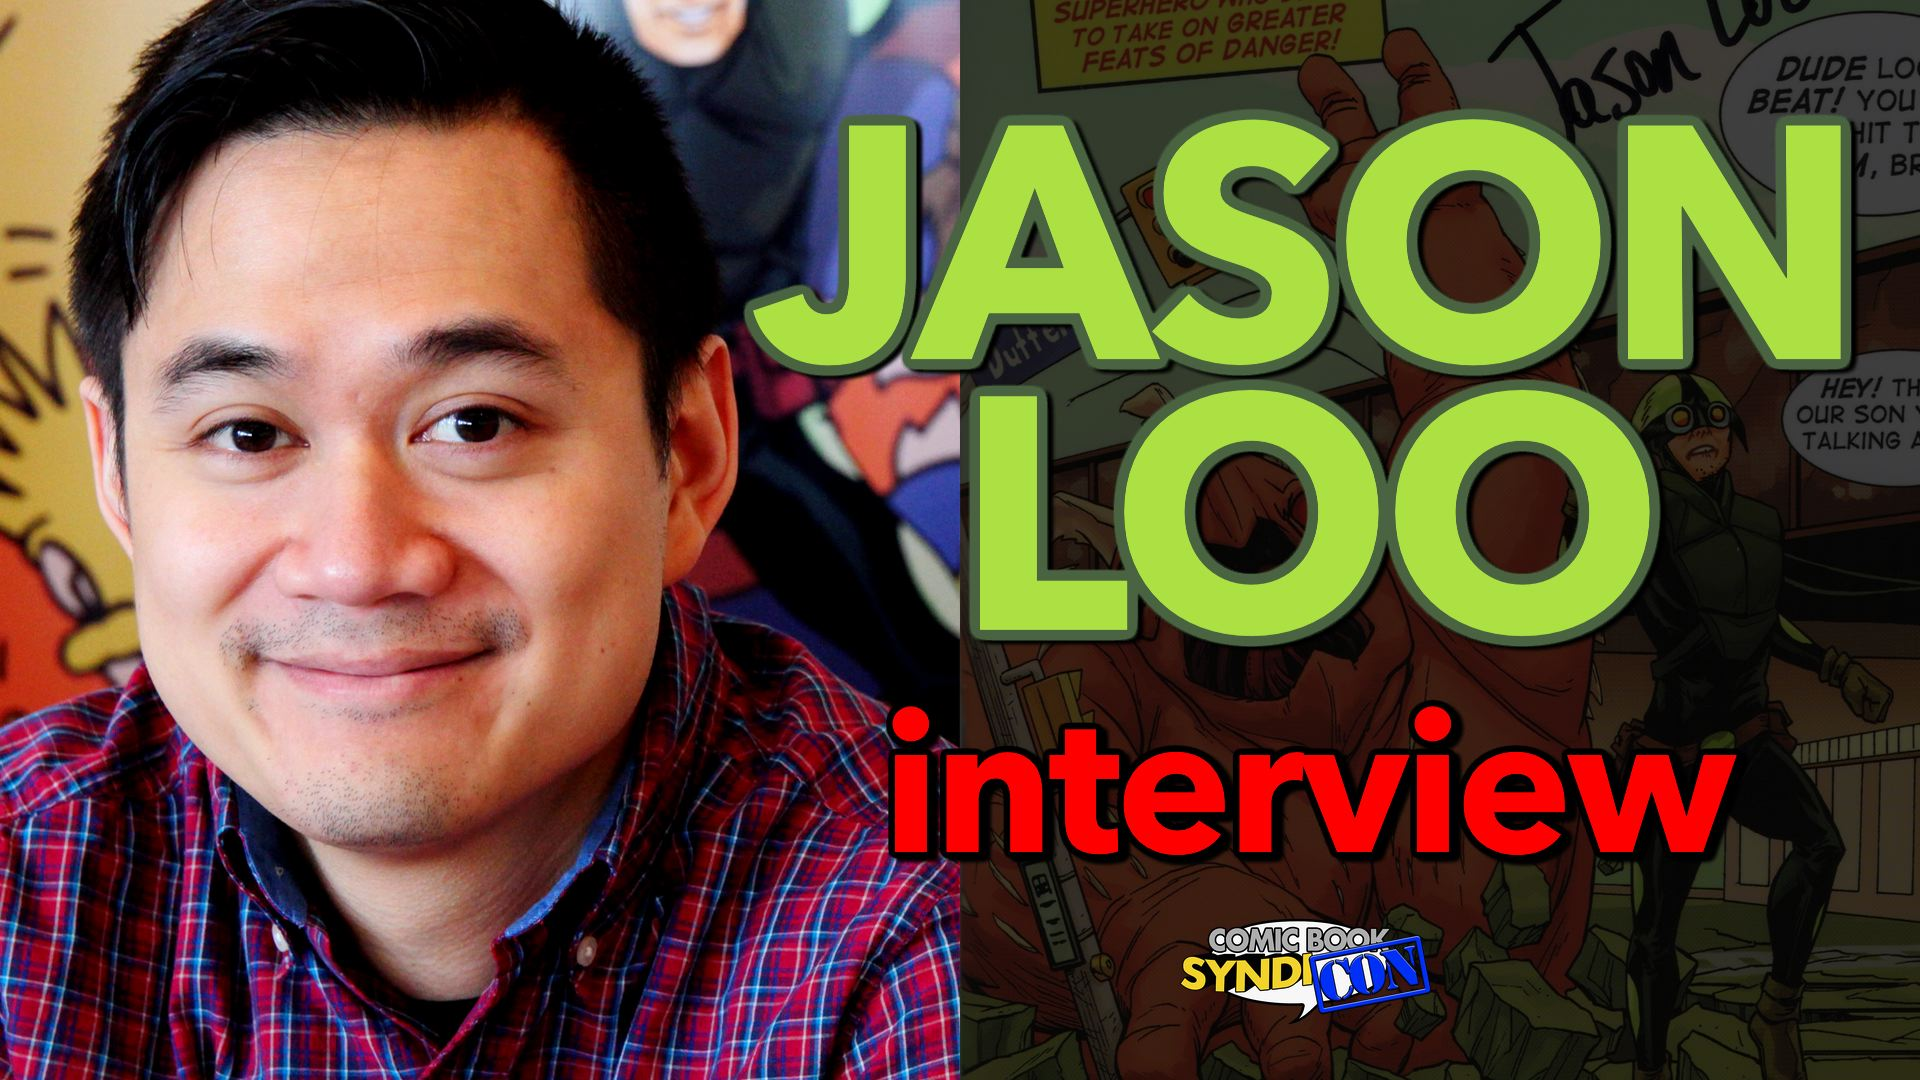 Interview with Jason Loo